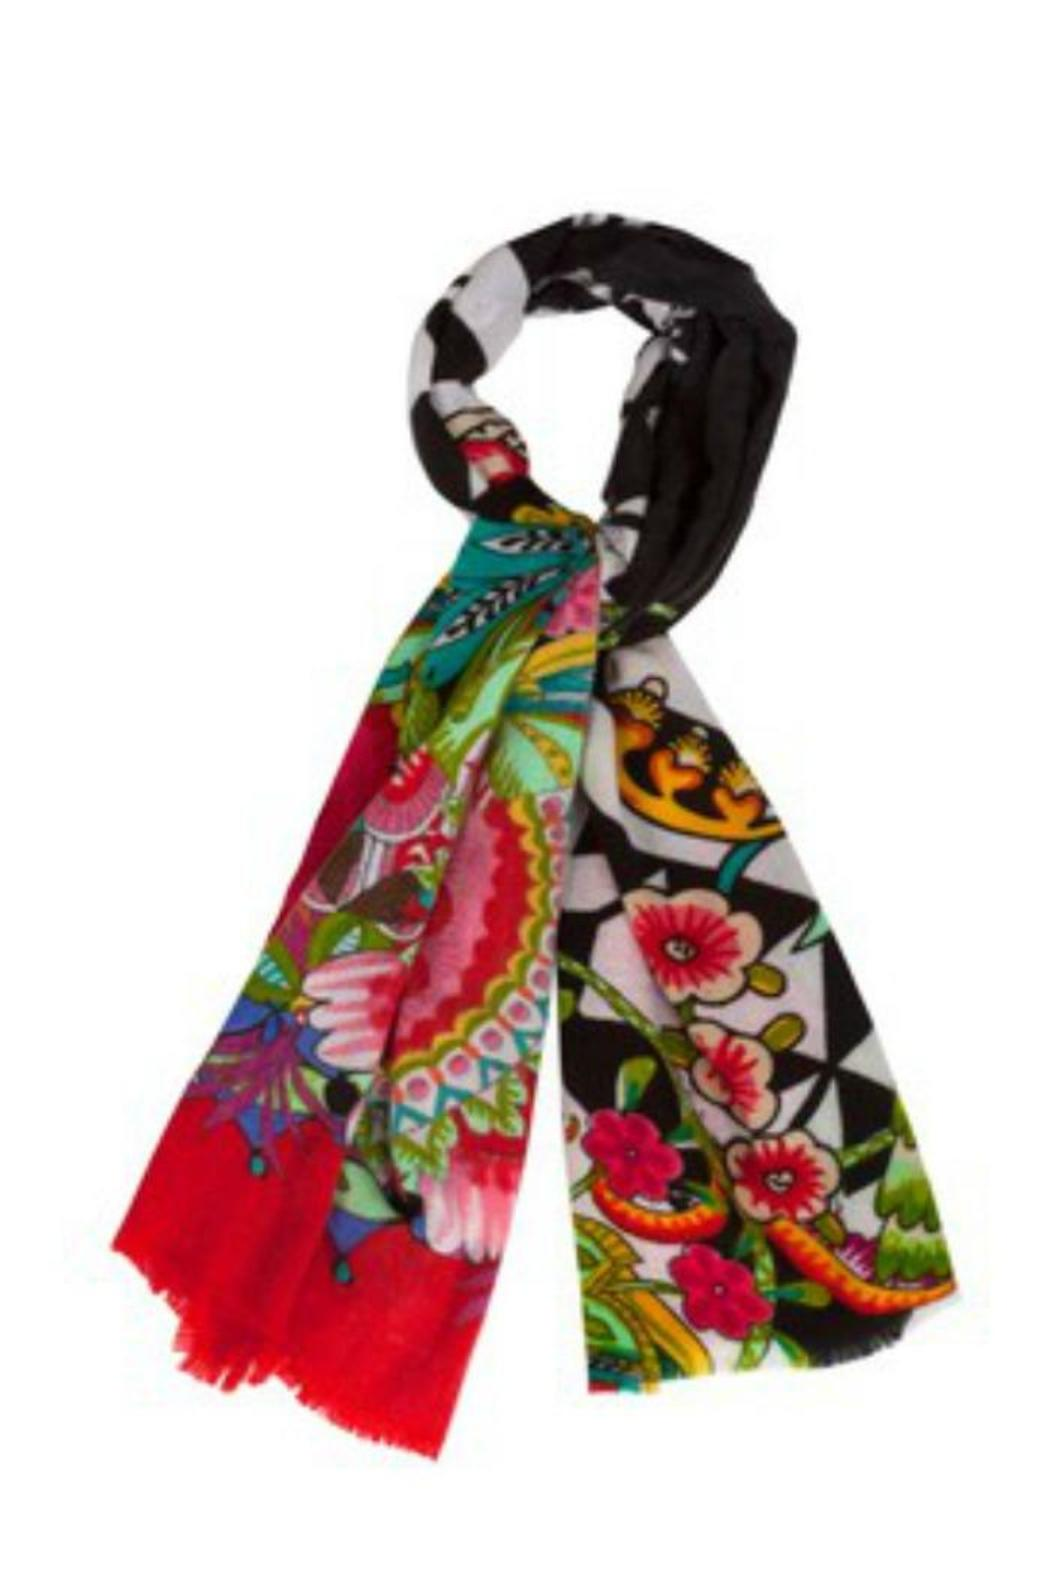 desigual jacky scarf from hawaii by hurricane limited